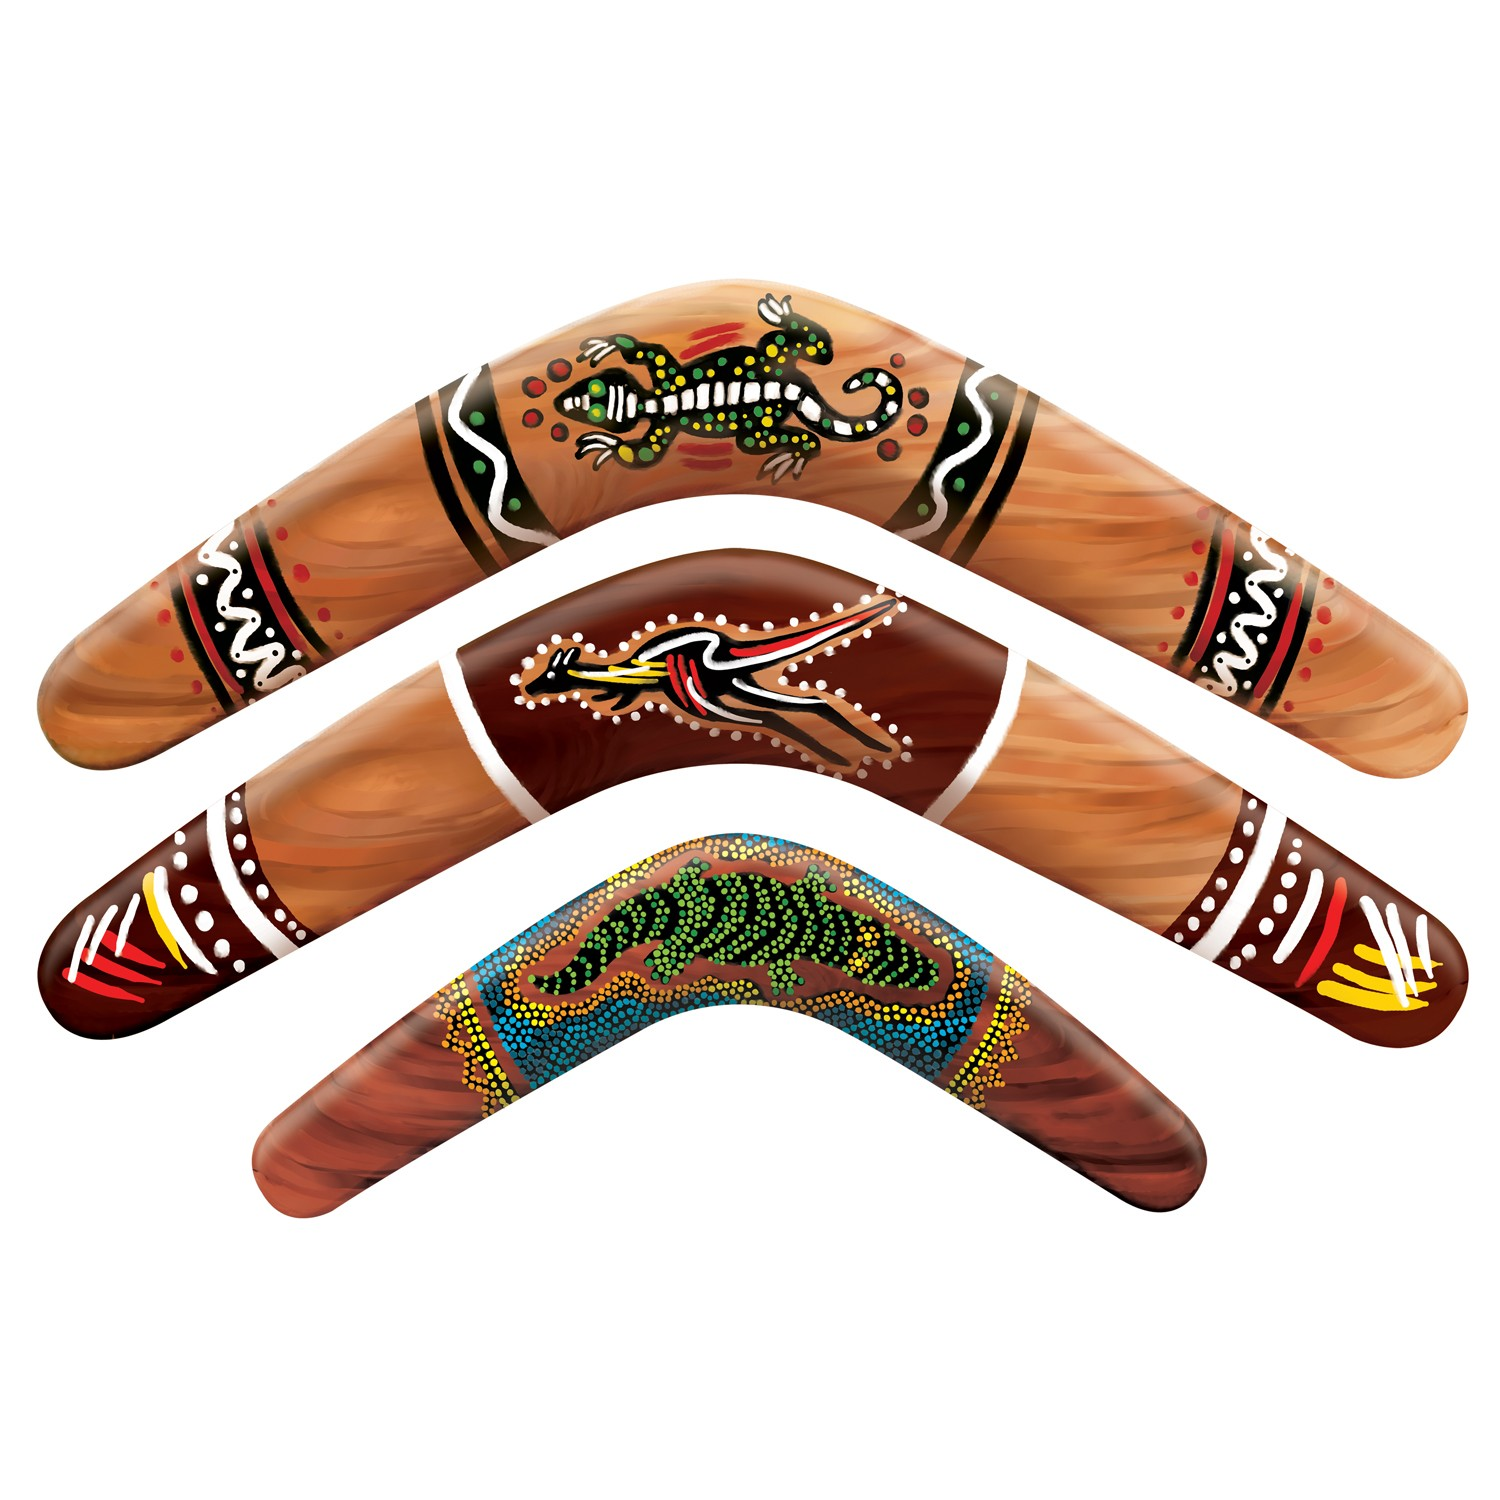 Australia boomerang clipart best for Australian decoration